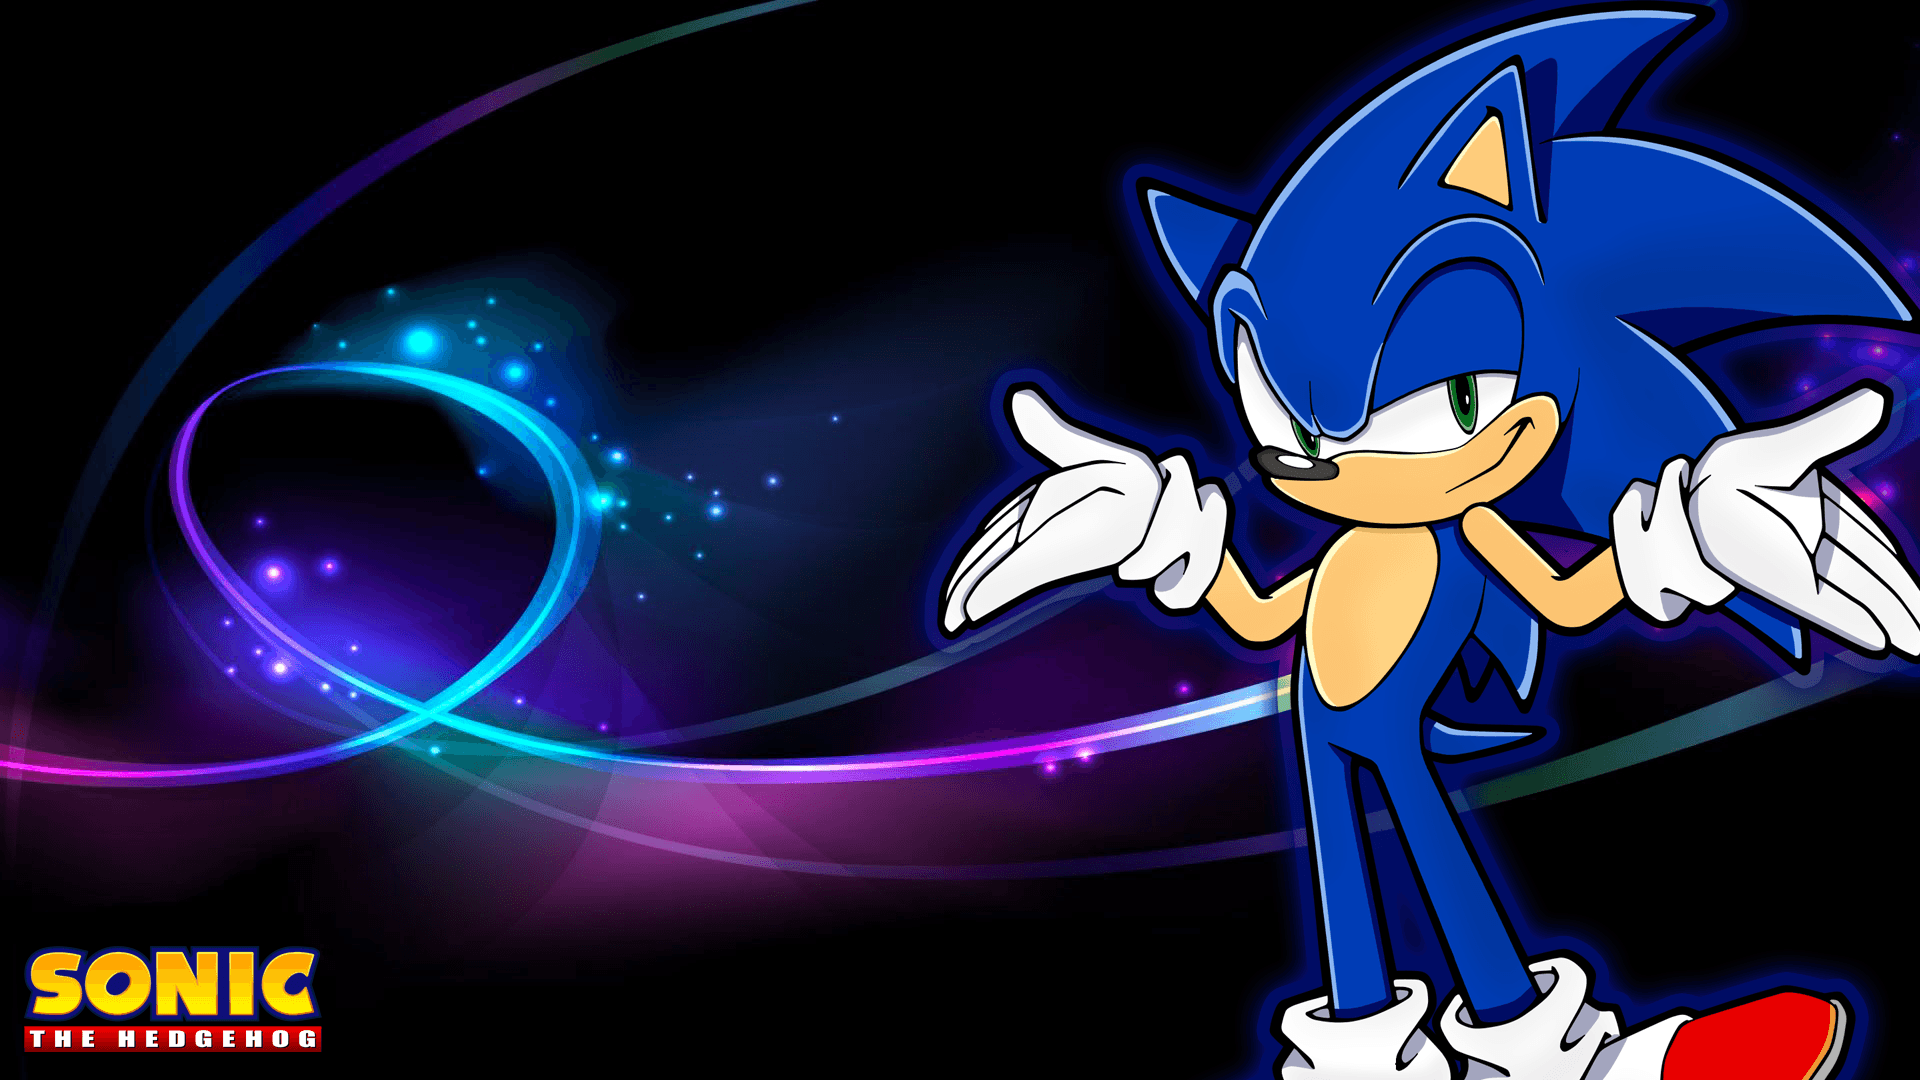 Sonic Wallpaper for Computer - WallpaperSafari